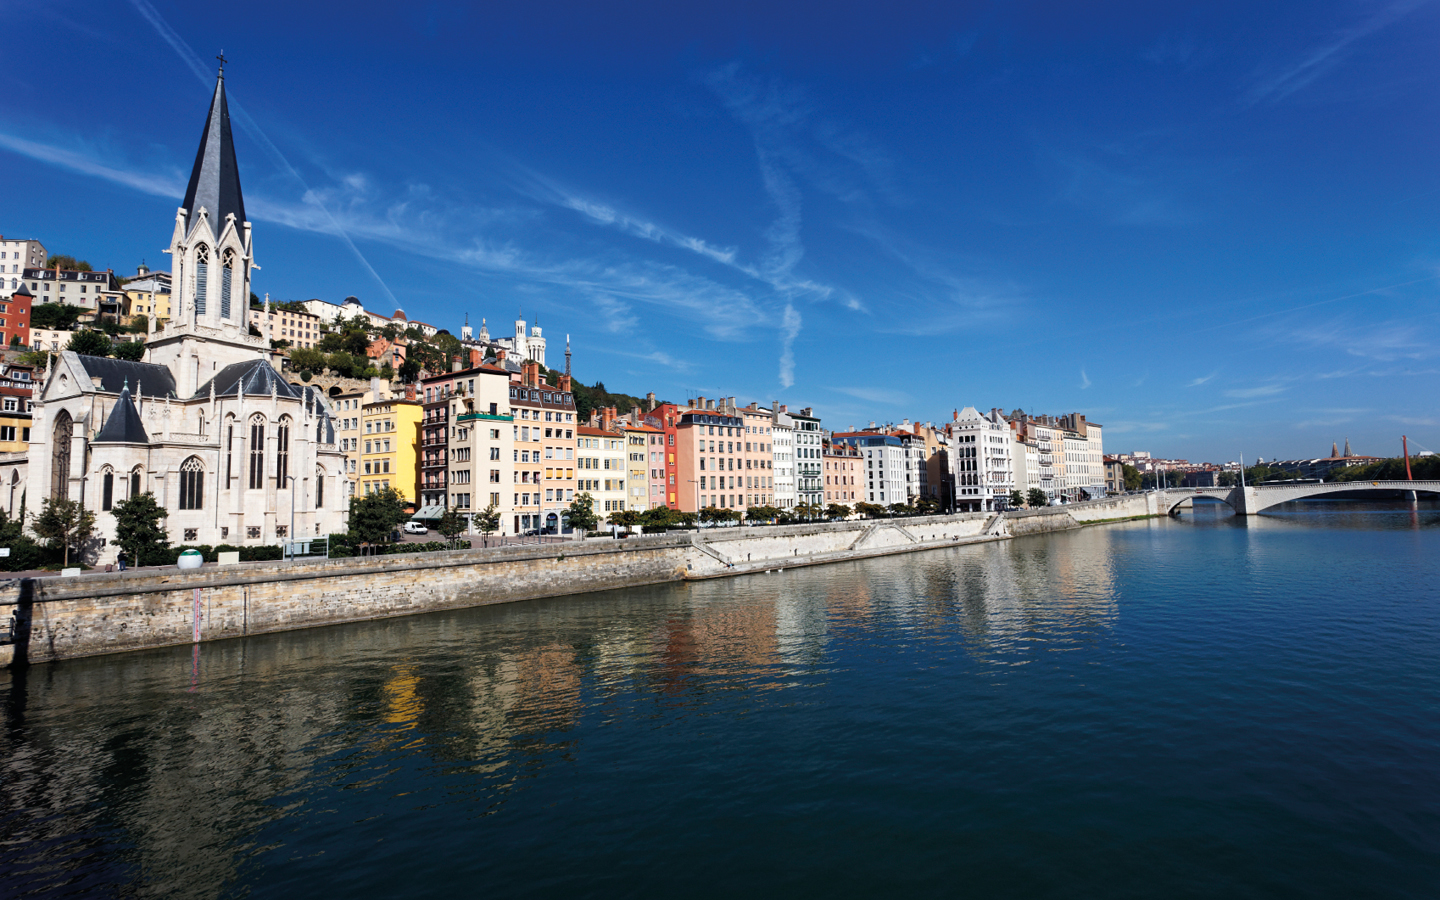 The Rhône River in Lyon, France